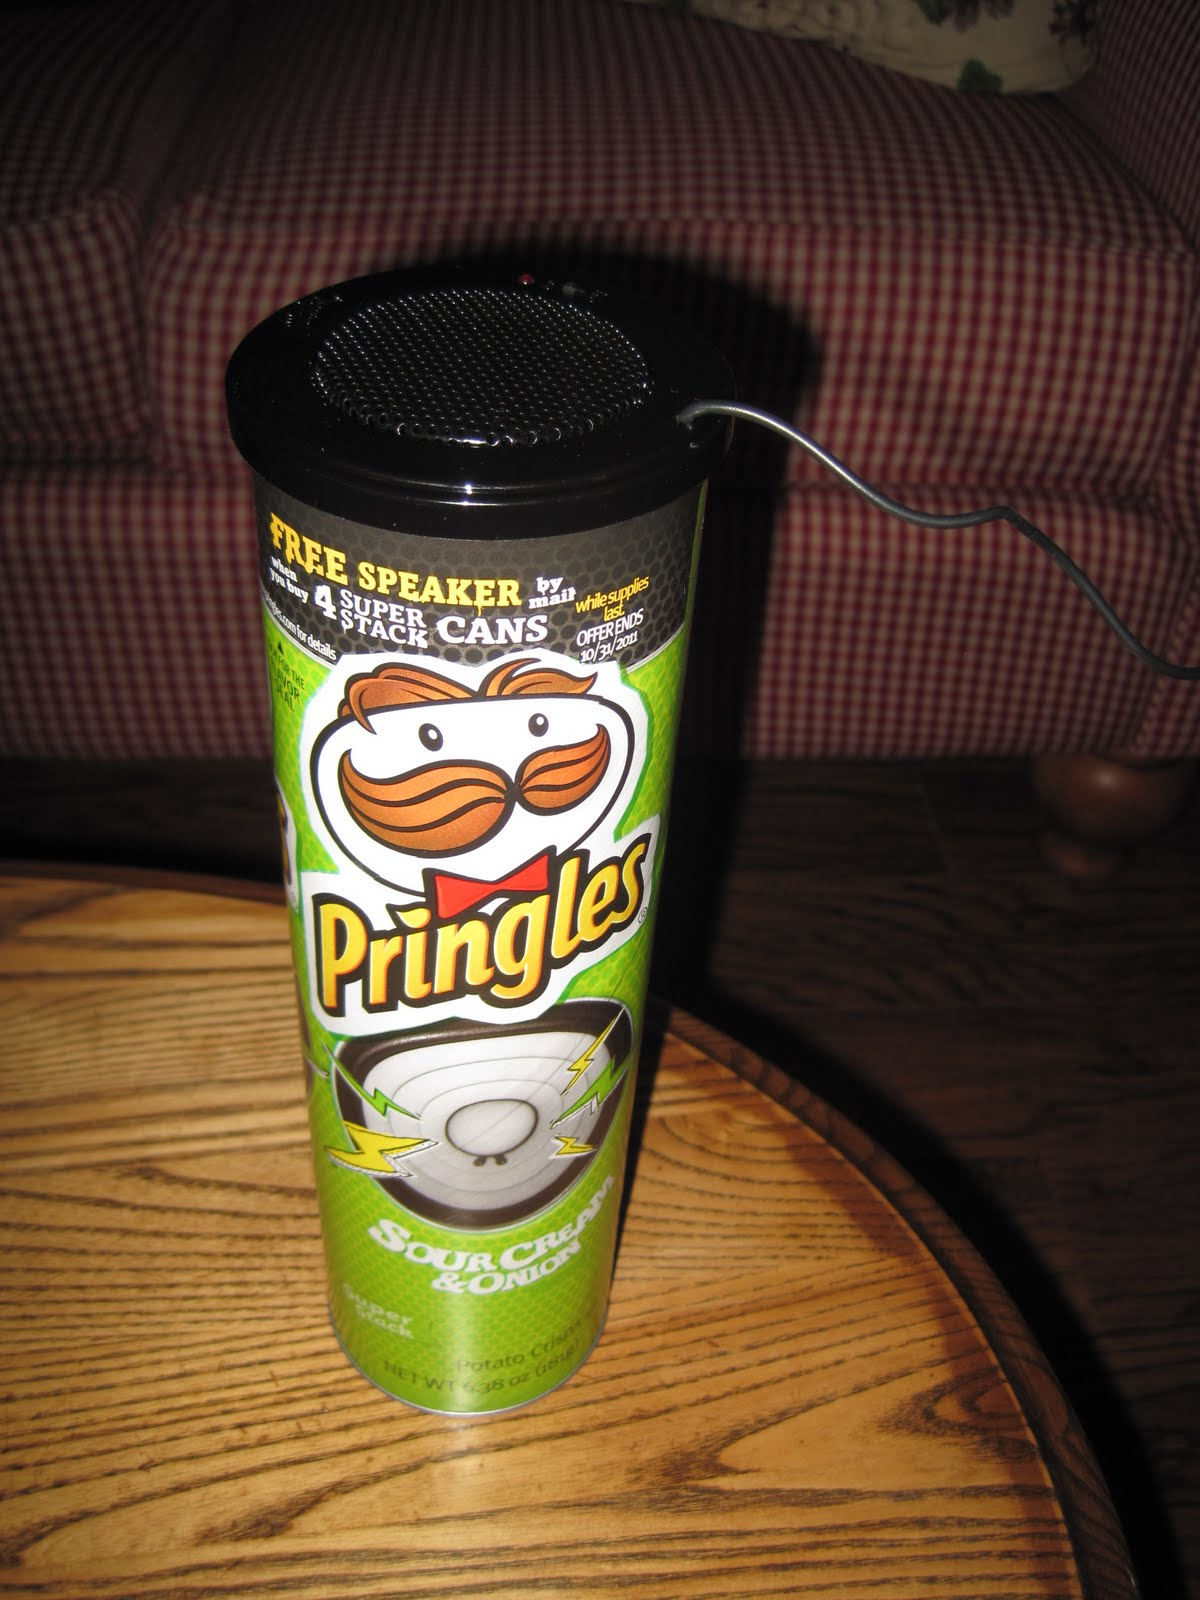 how to make a speaker with a pringles can